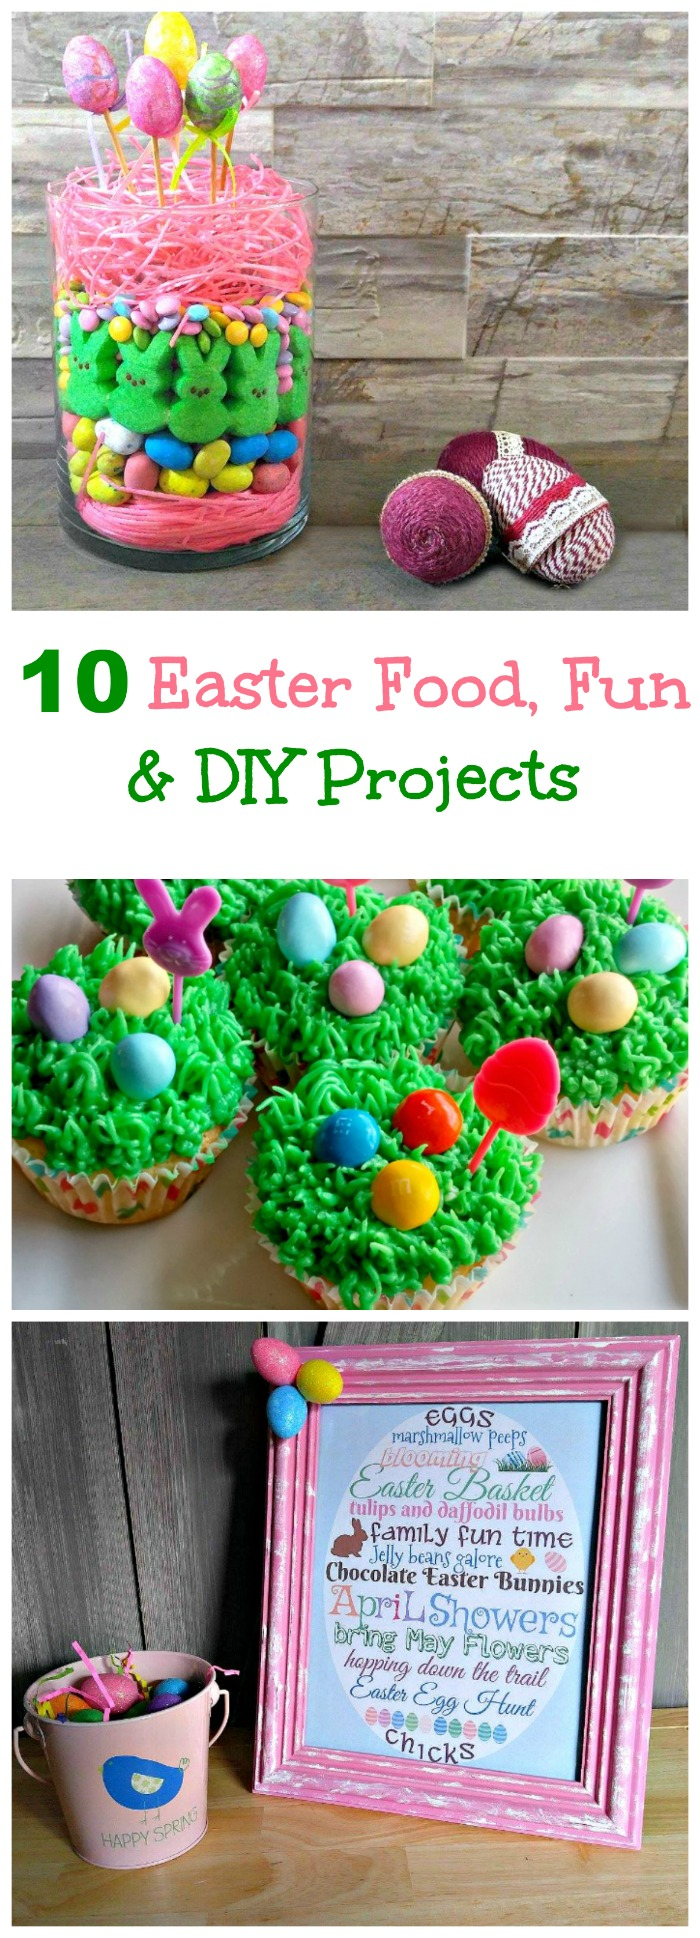 Easter fun with diy projects home decor recipes for Fun at home projects